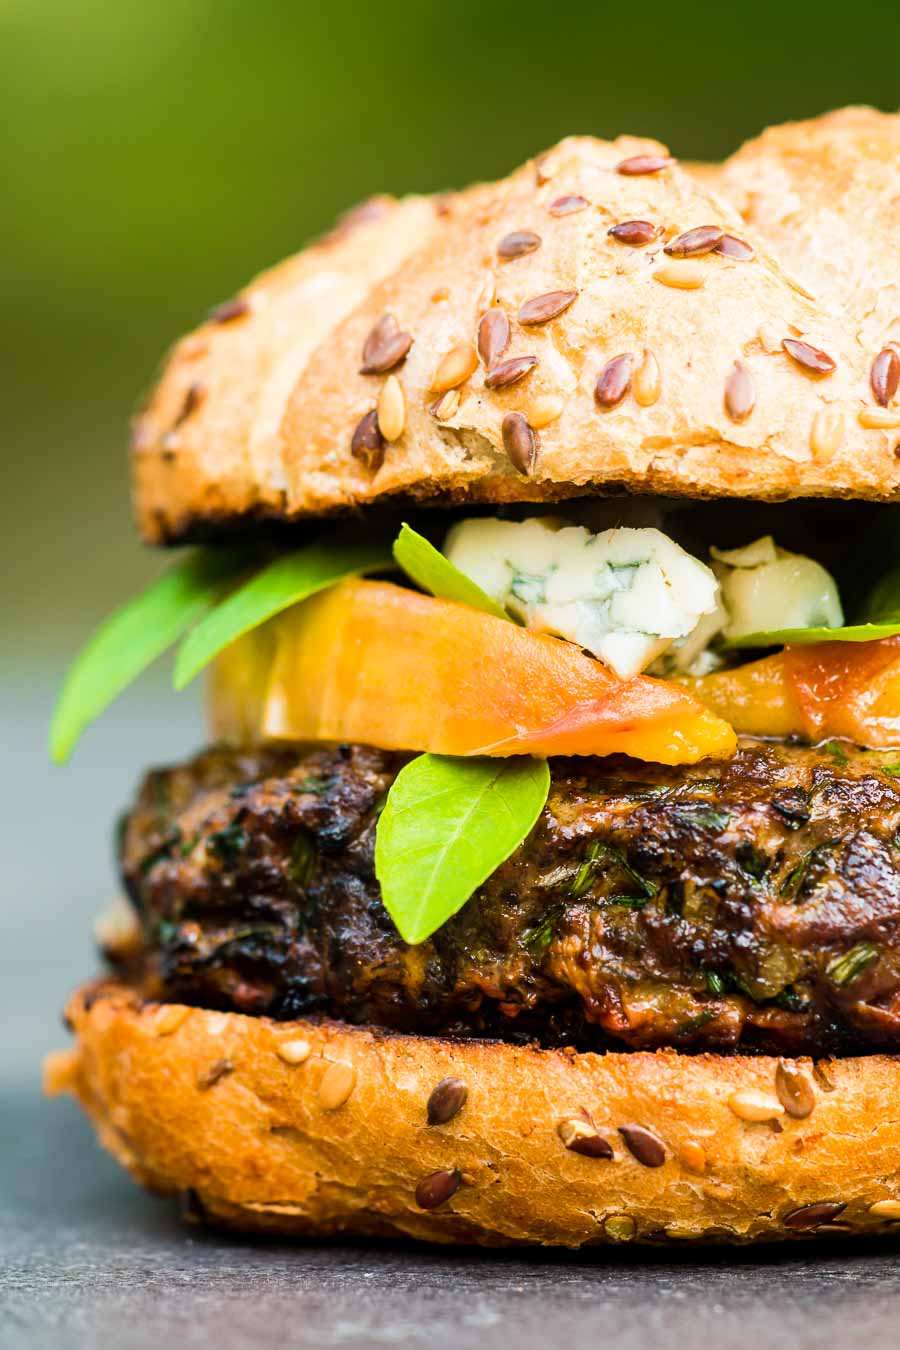 You can't beat a good grilled burger, but there is life beyond beef. This venison burger is topped with gin cooked peaches and blue cheese!